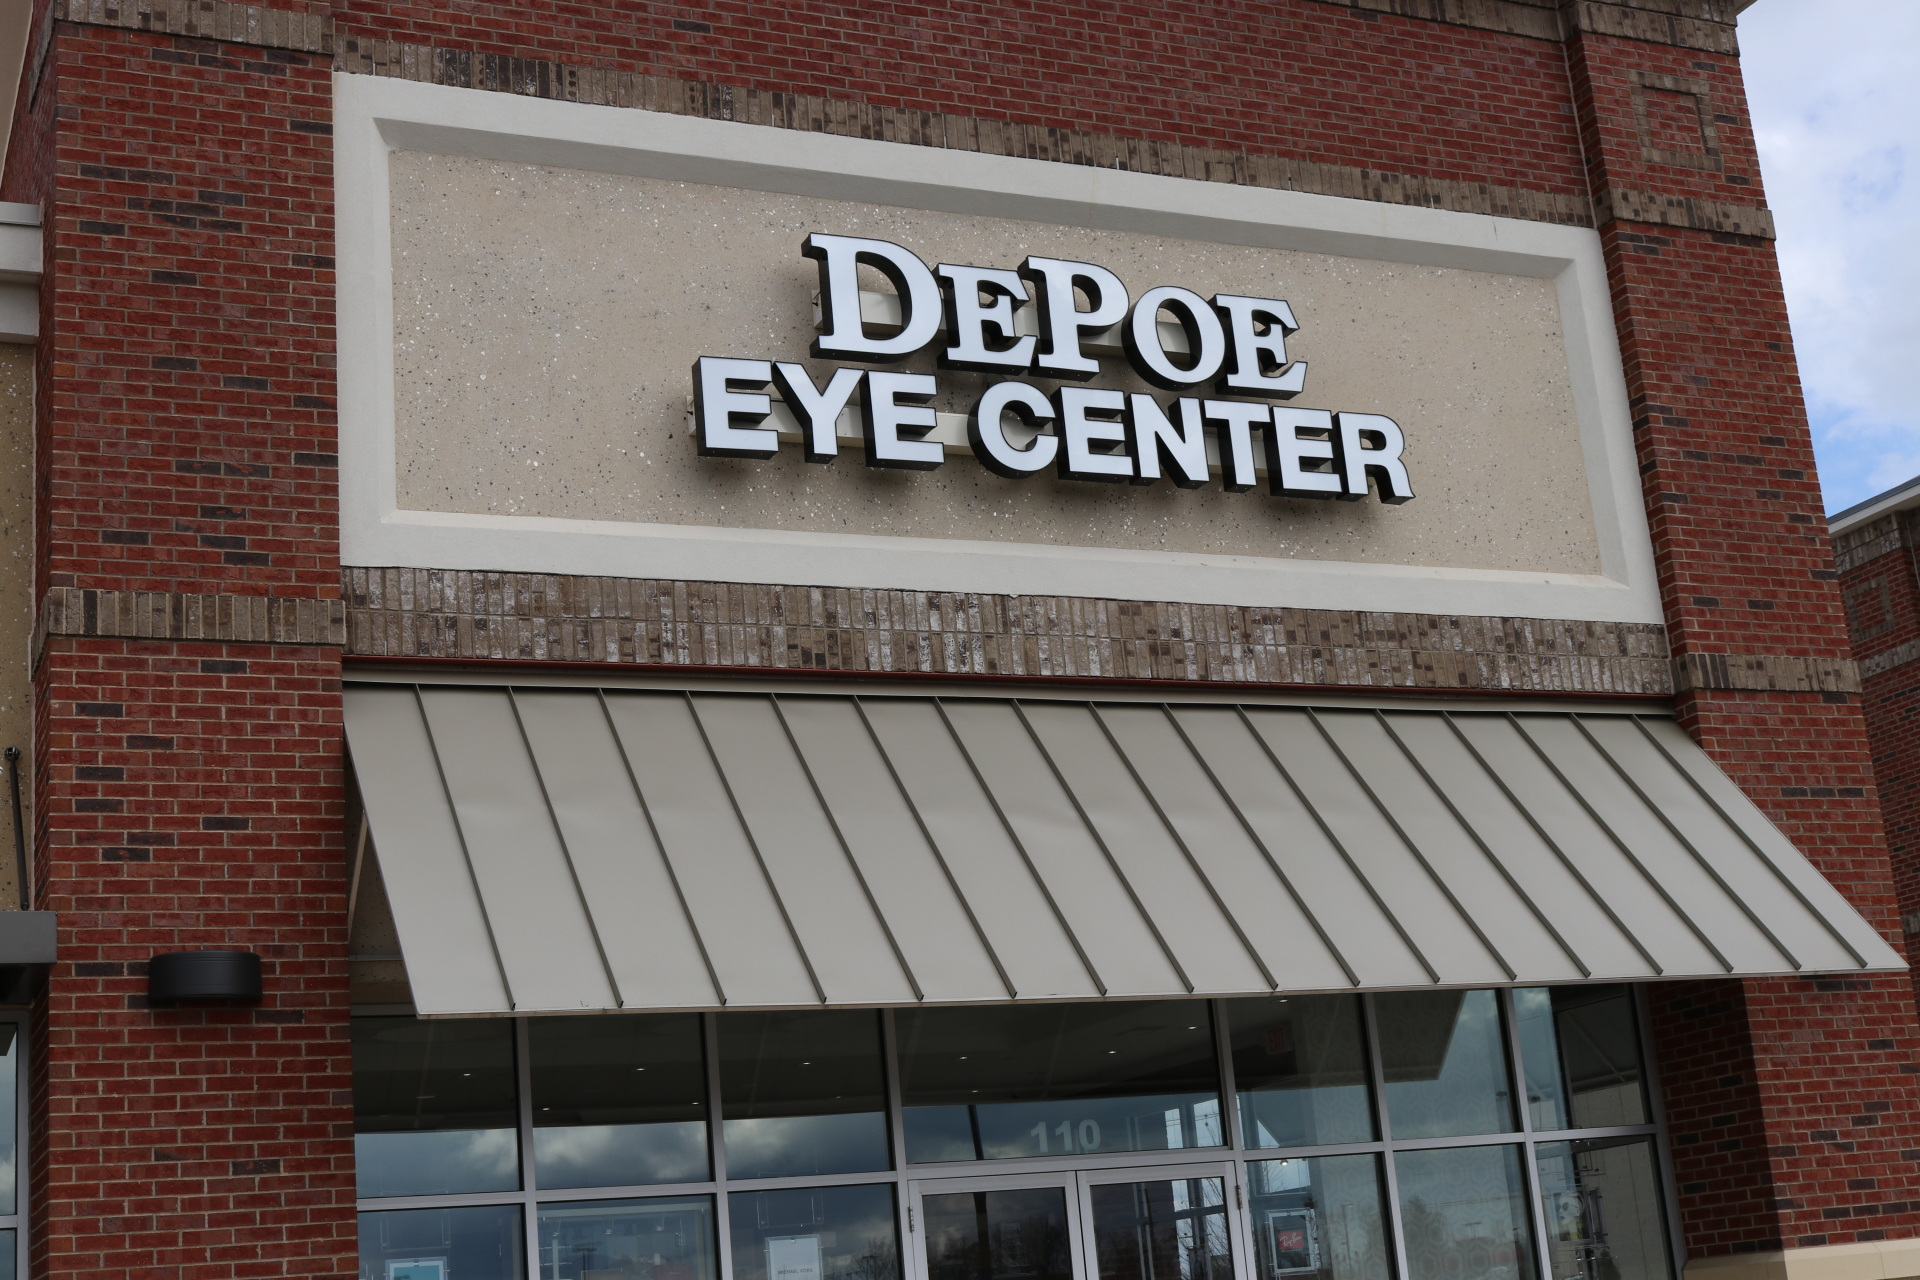 DePoe Eye Center